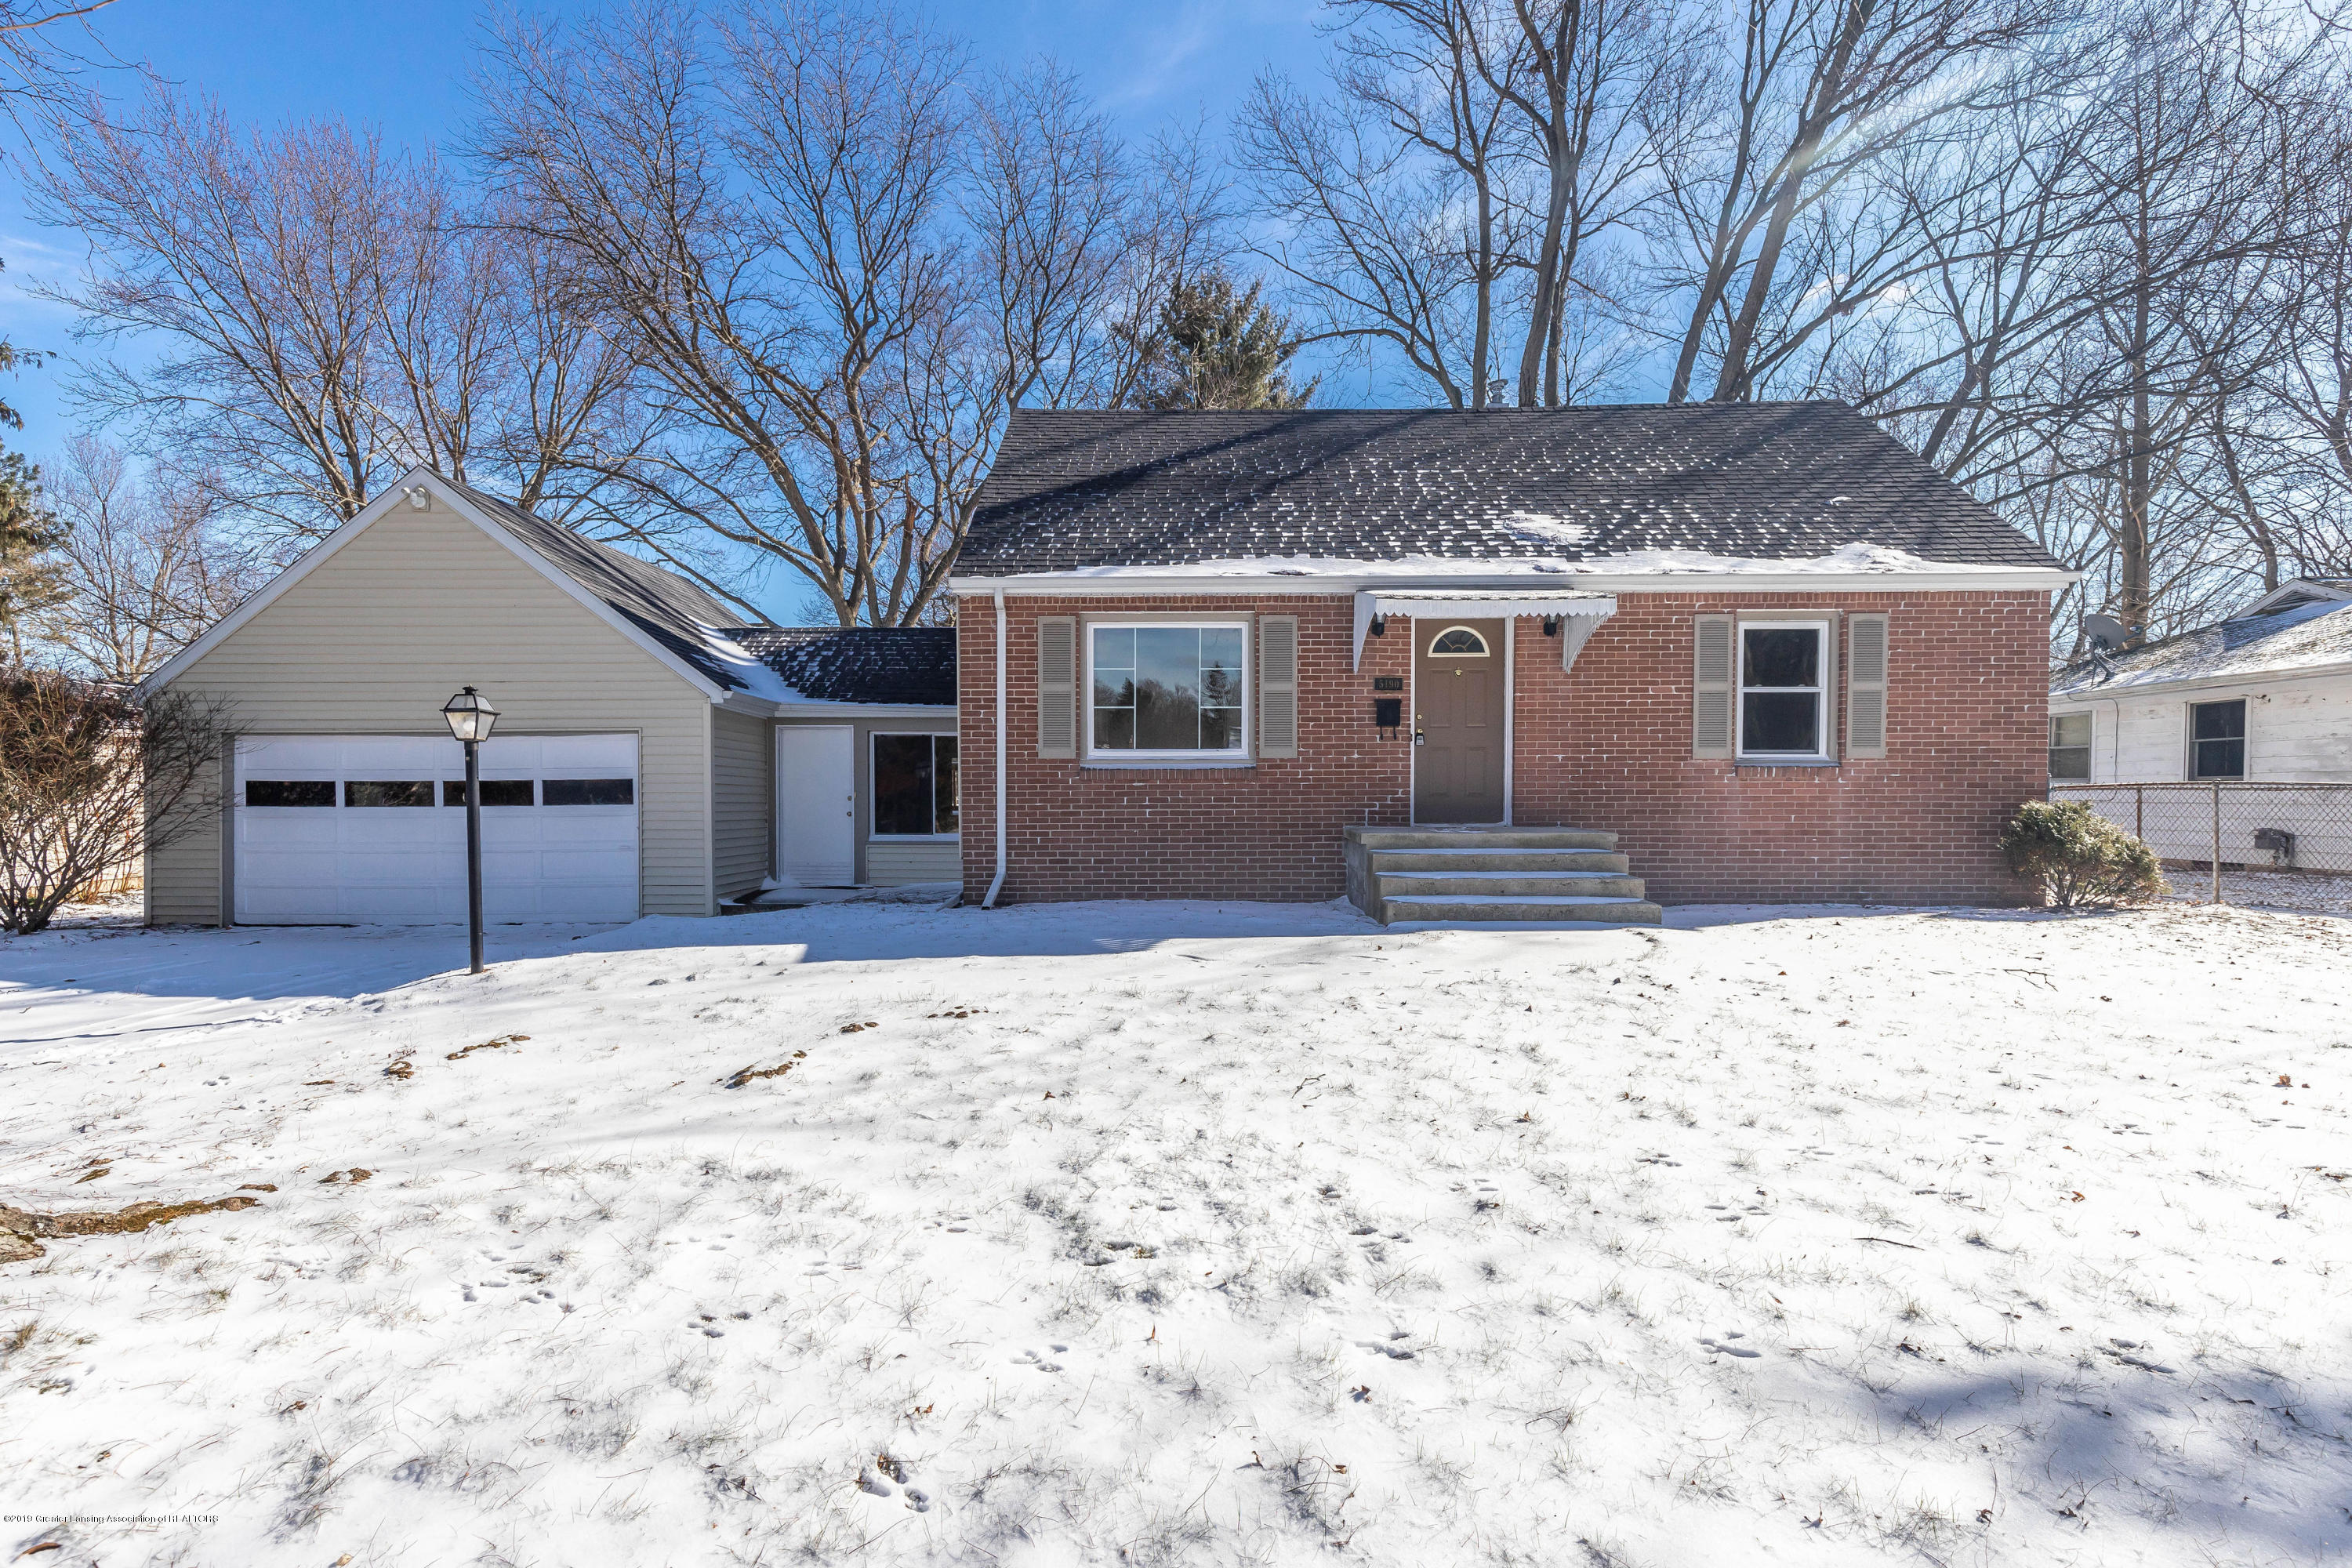 5190 Greenfield Pkwy - greenfront2(1of1) - 1